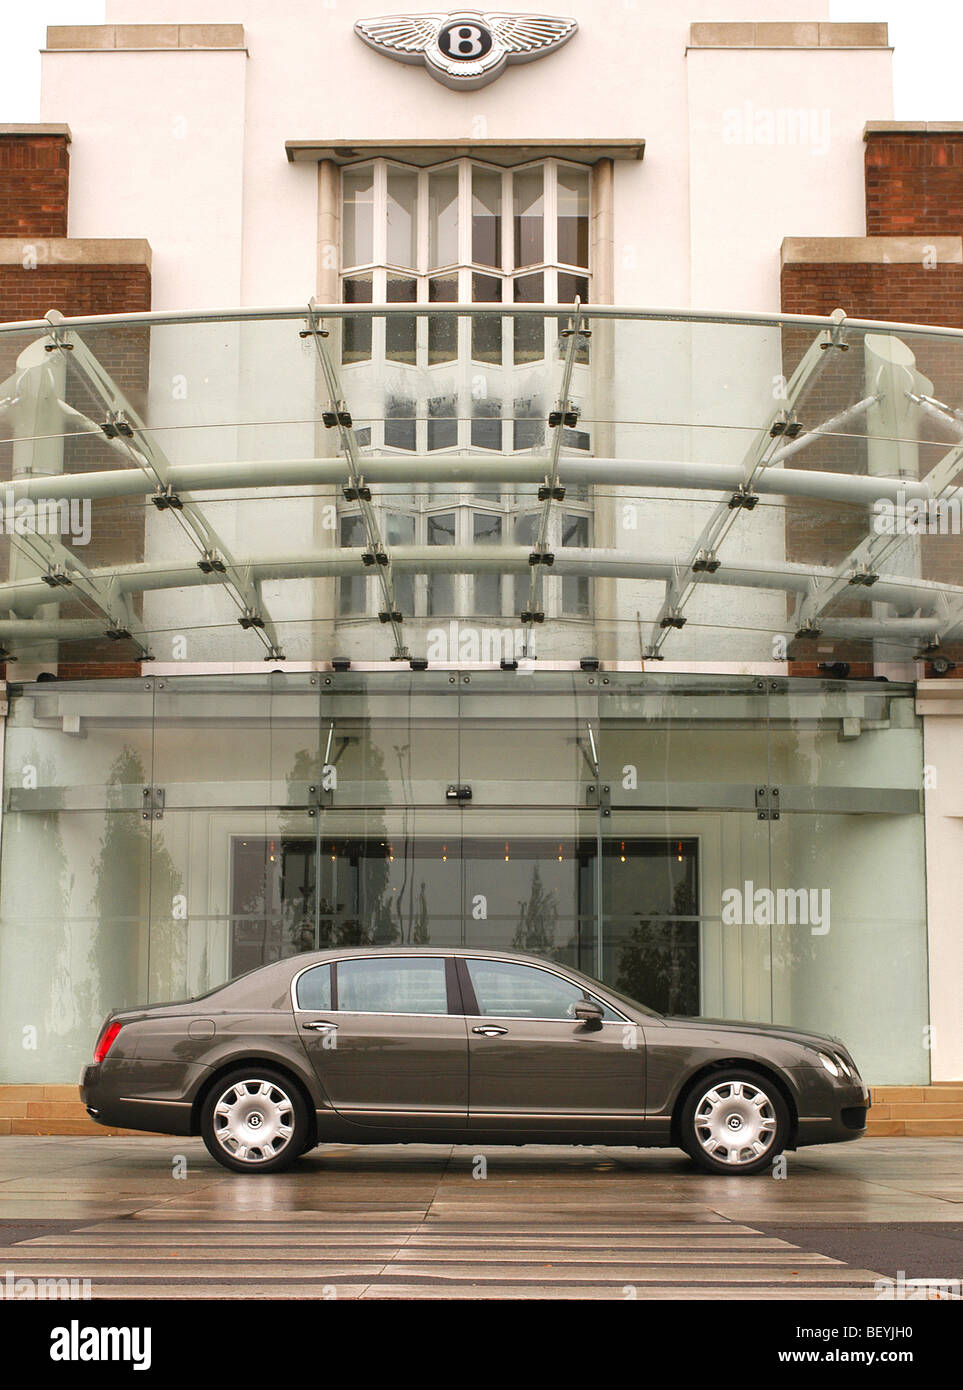 Bentley Continental Flying Spur motor car - Stock Image